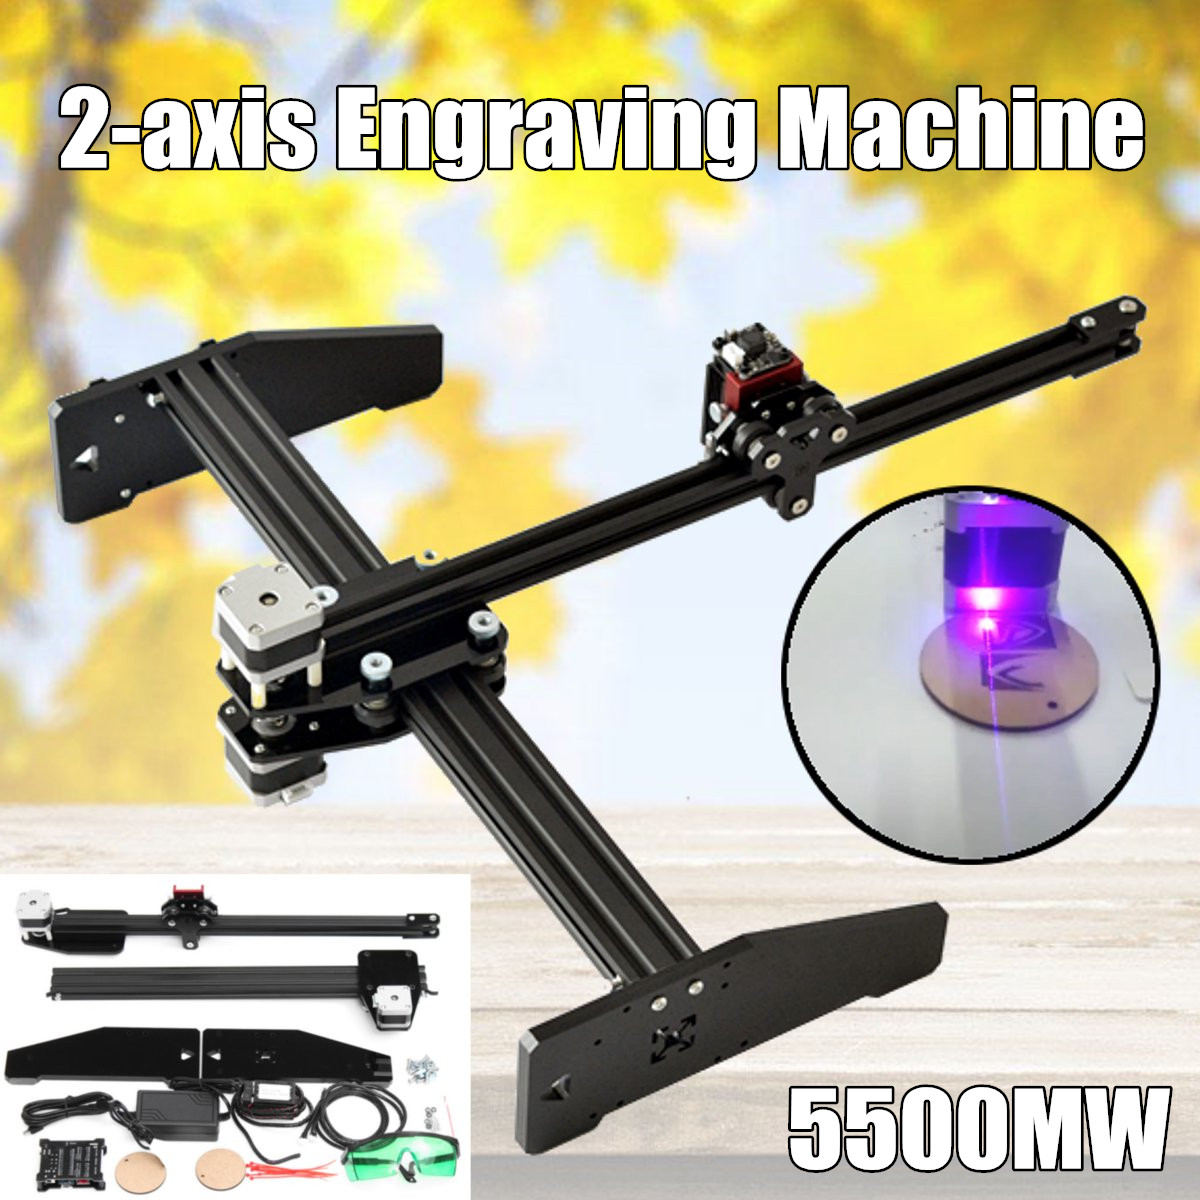 2 Axis 5500mw A3 Laser Engraving Cutting Engraver CNC Cutter Logo Printer Machine Wood Carving machine best Advanced toys цена